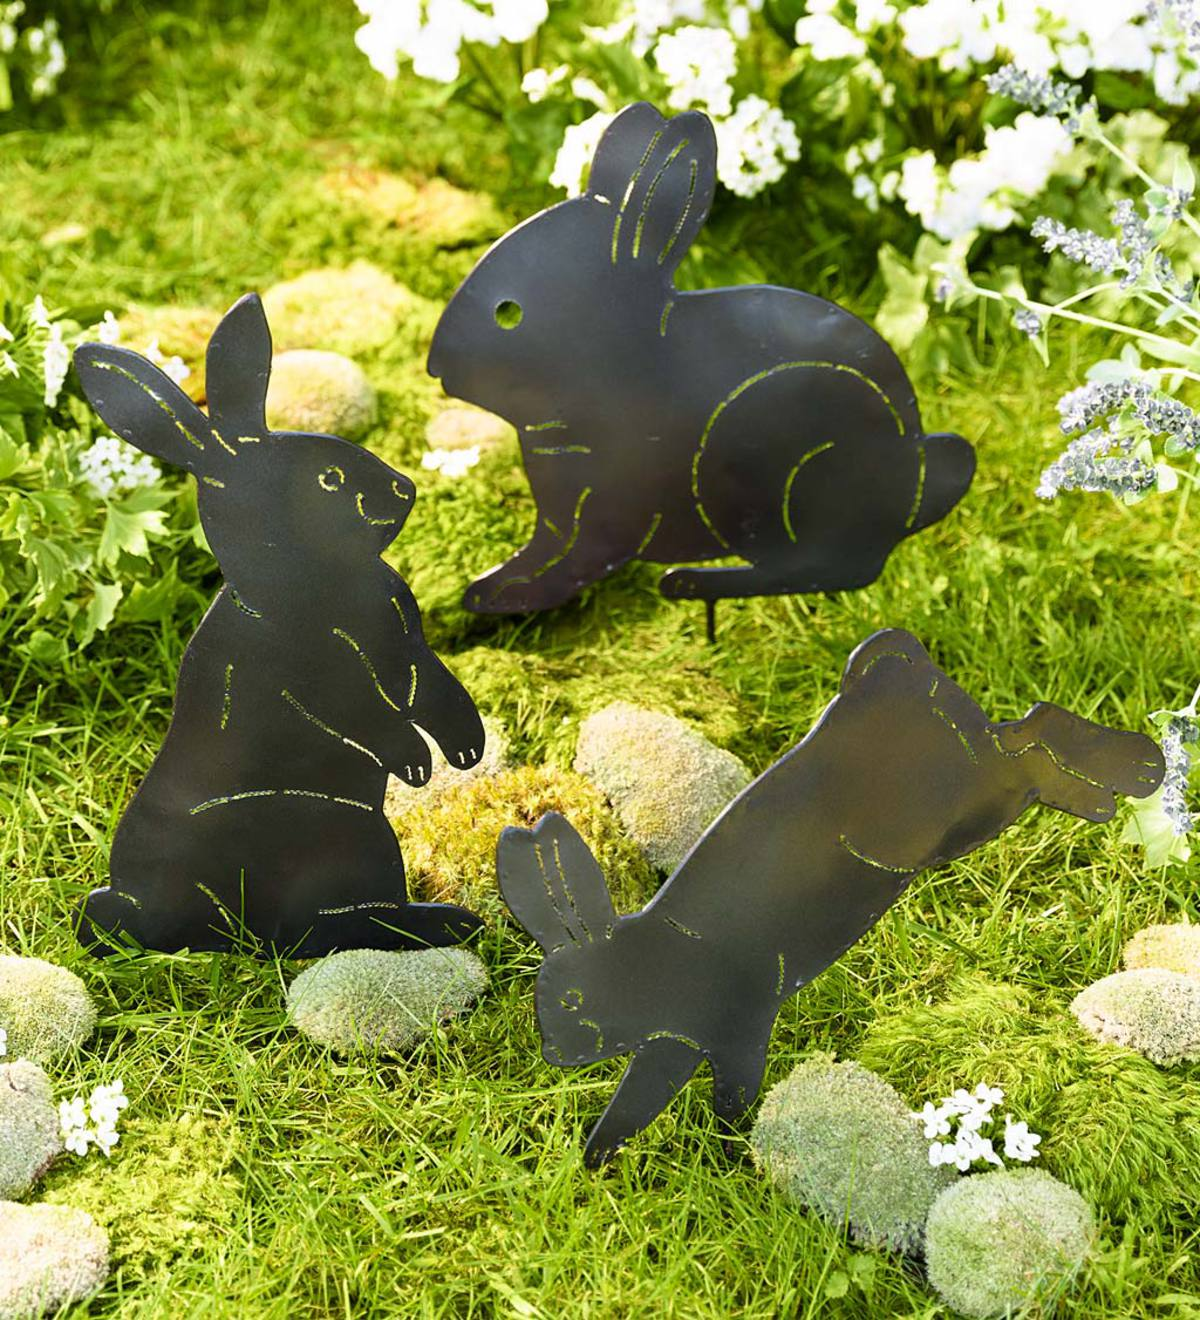 Metal Bunny Silhouettes Garden Decor, Set of 3